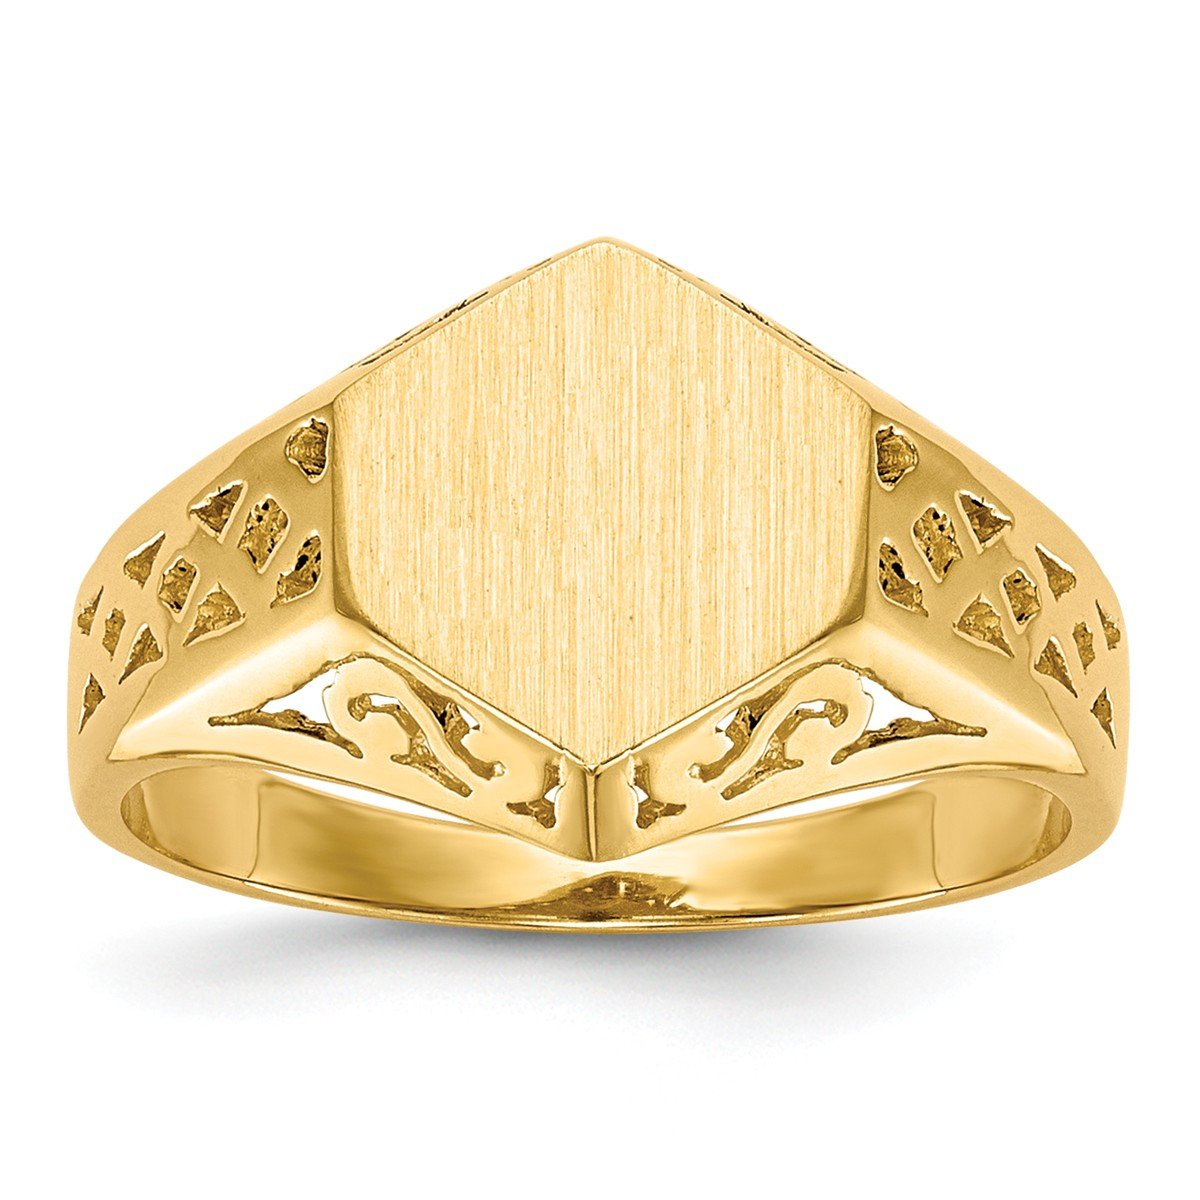 Roy Rose Jewelry 14K Yellow Gold Open Back Womens Cut-out Sides 6-sided Top Signet Ring Custom Personailzed with Free Engraving Available Initial or Monogram ~ Size 4